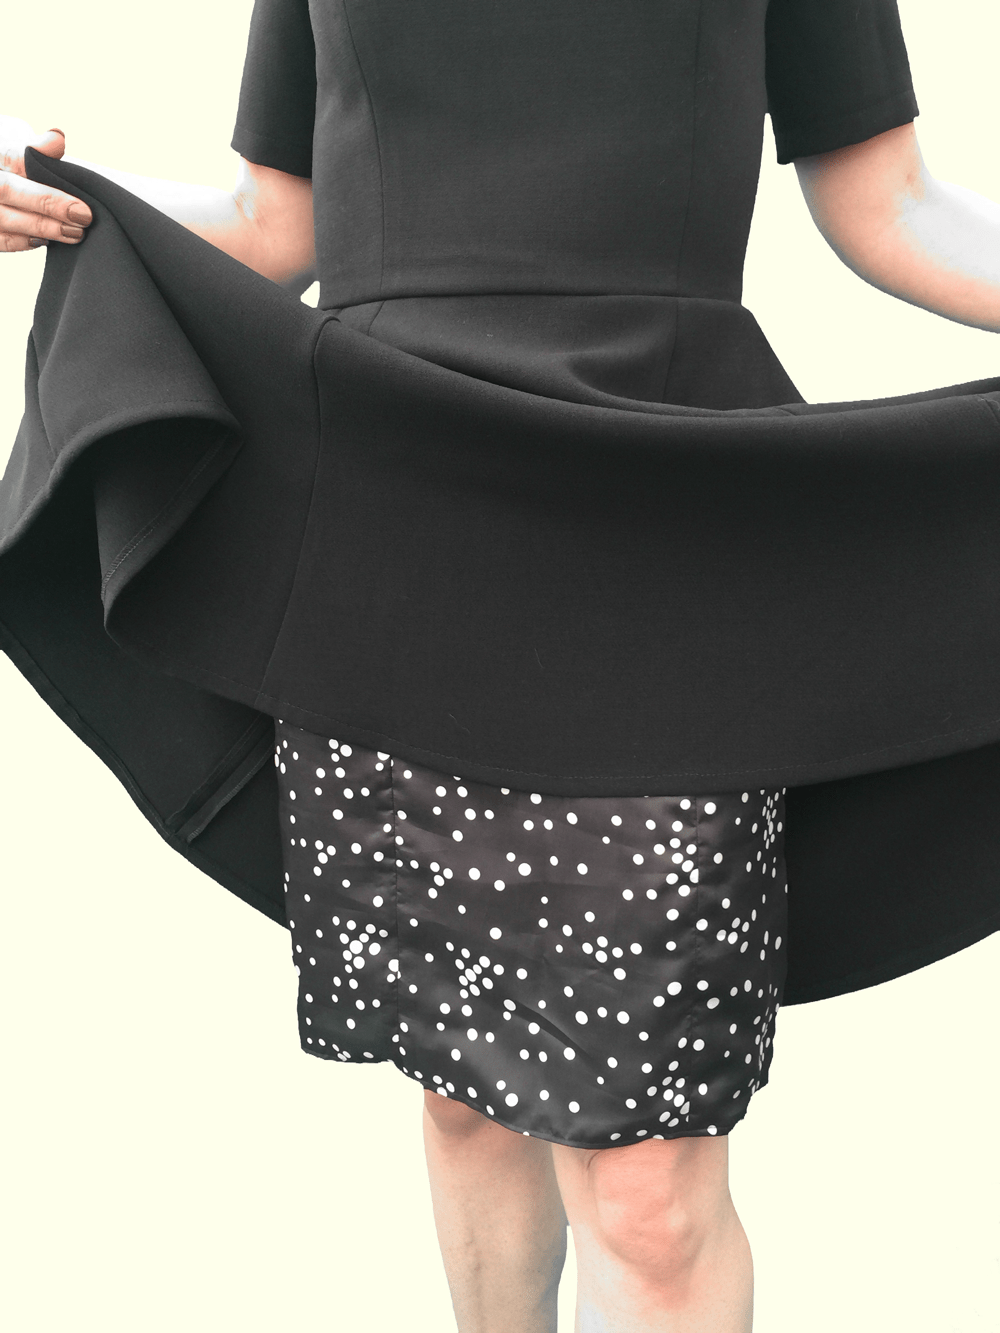 Black Dress with Princess seams - Sewing Avenue